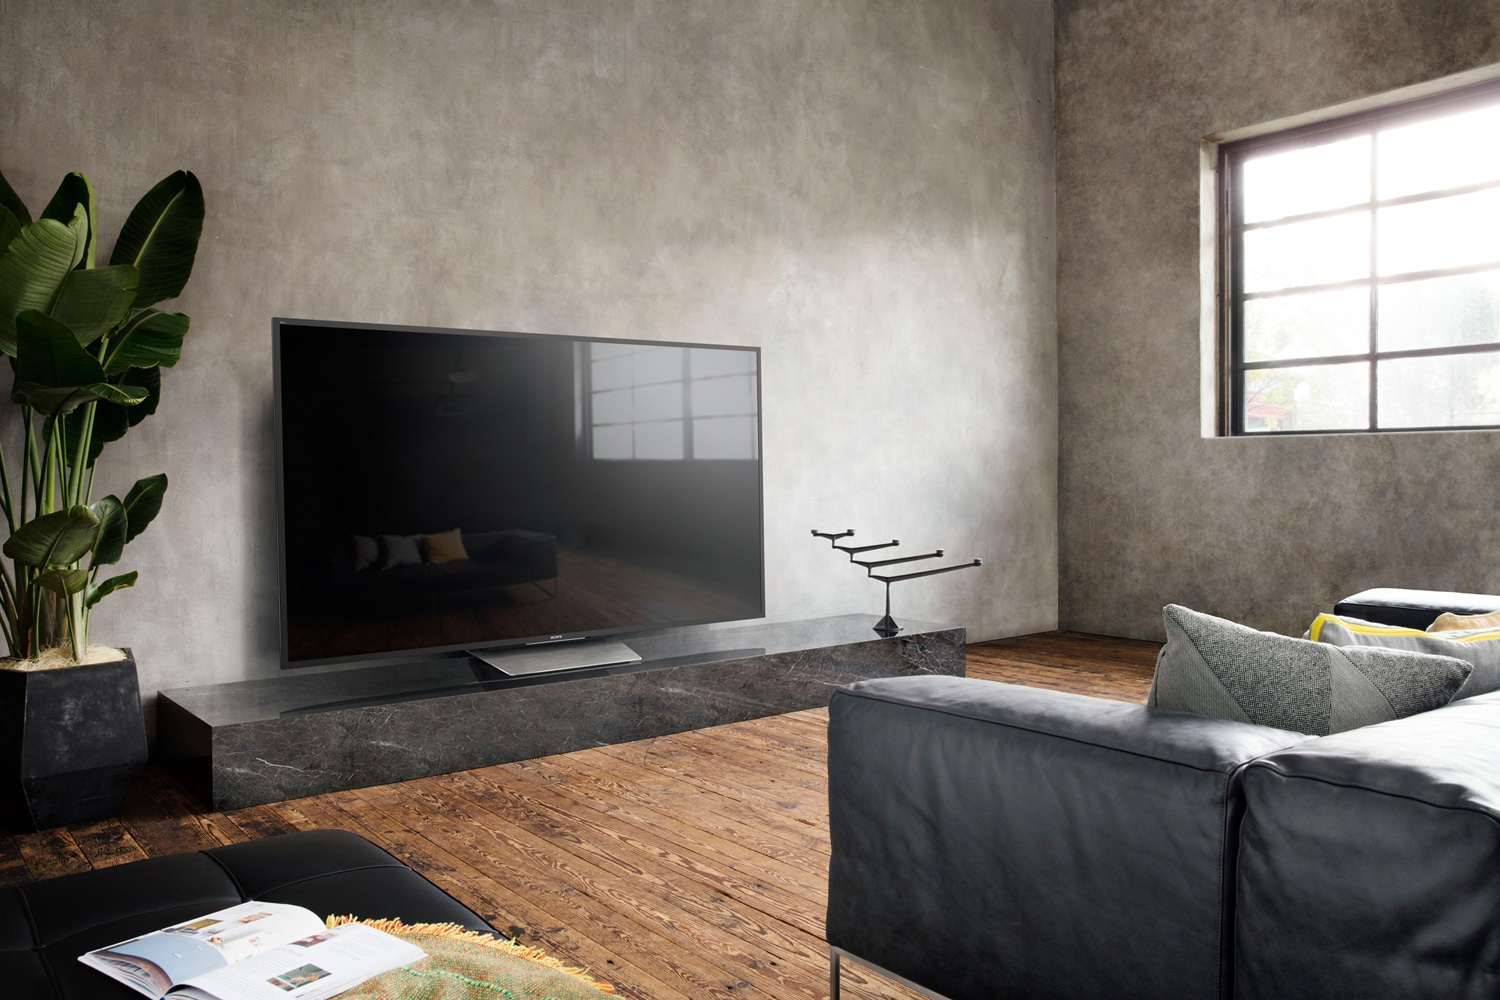 sony neue 4k hdr fernseher mit bis zu 85 zoll ces 2016 4k filme. Black Bedroom Furniture Sets. Home Design Ideas